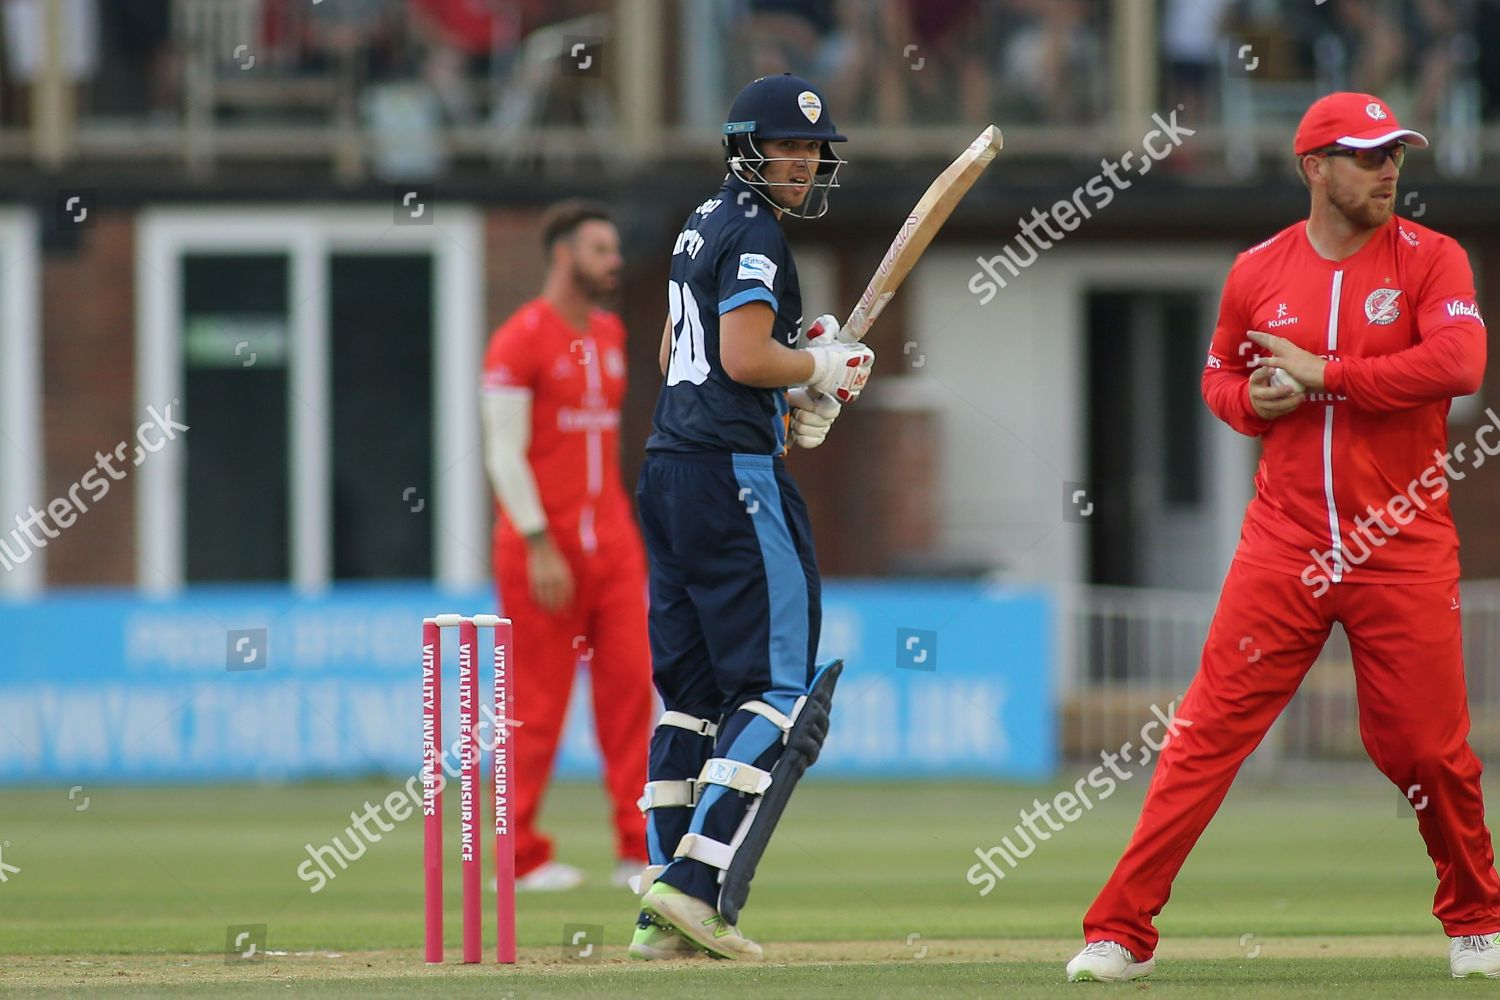 Matthew Critchley Derbyshire Falcons during Natwest T20